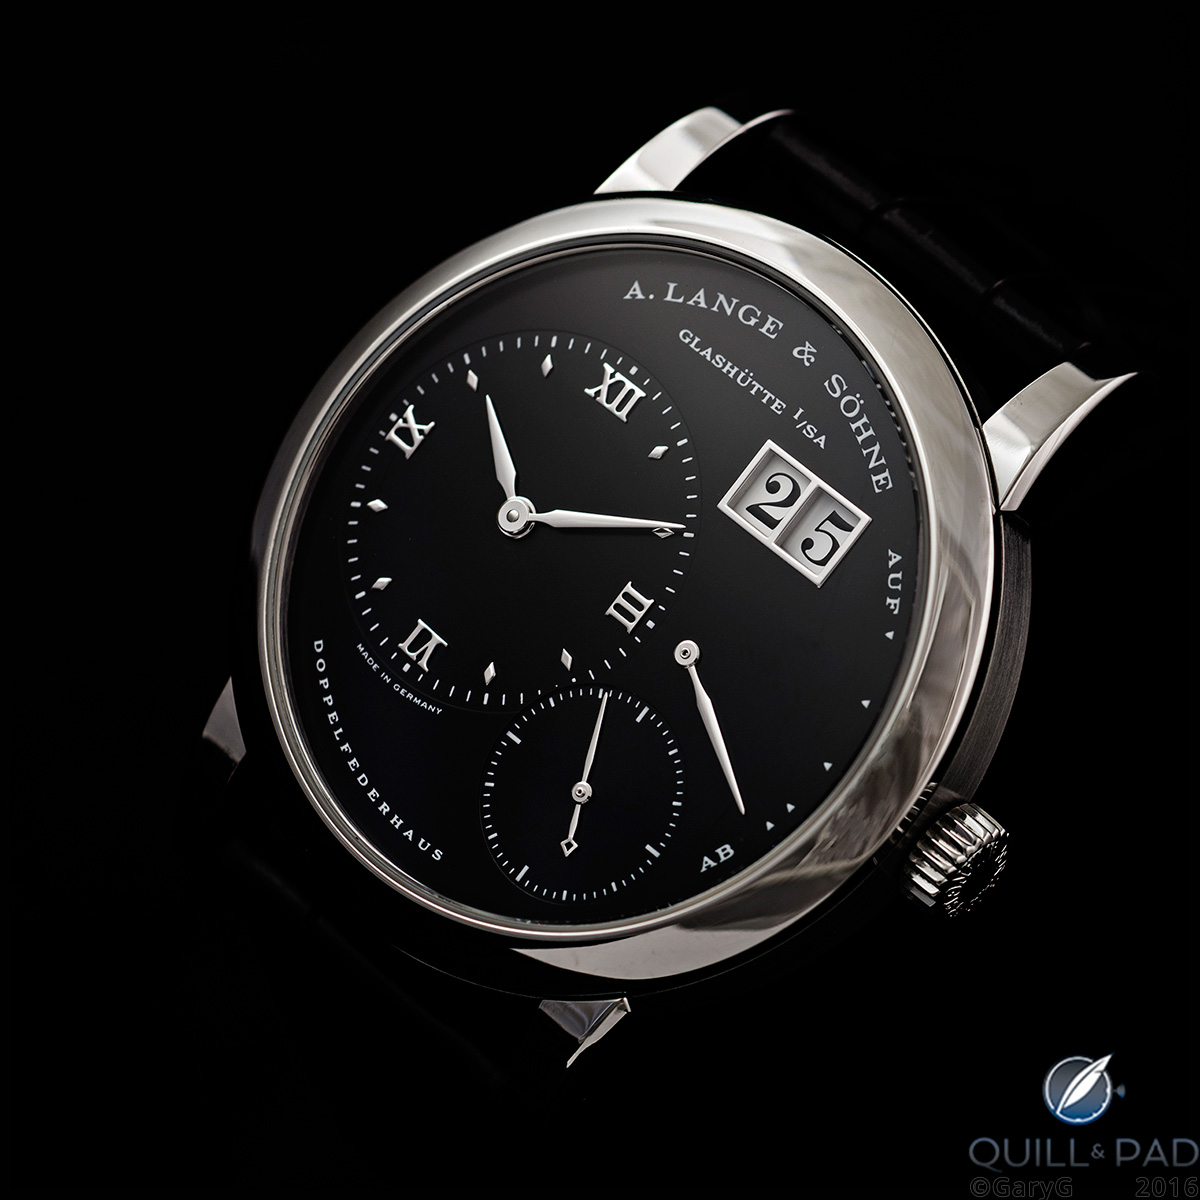 A. Lange & Söhne Lange 1 in stainless steel with black dial